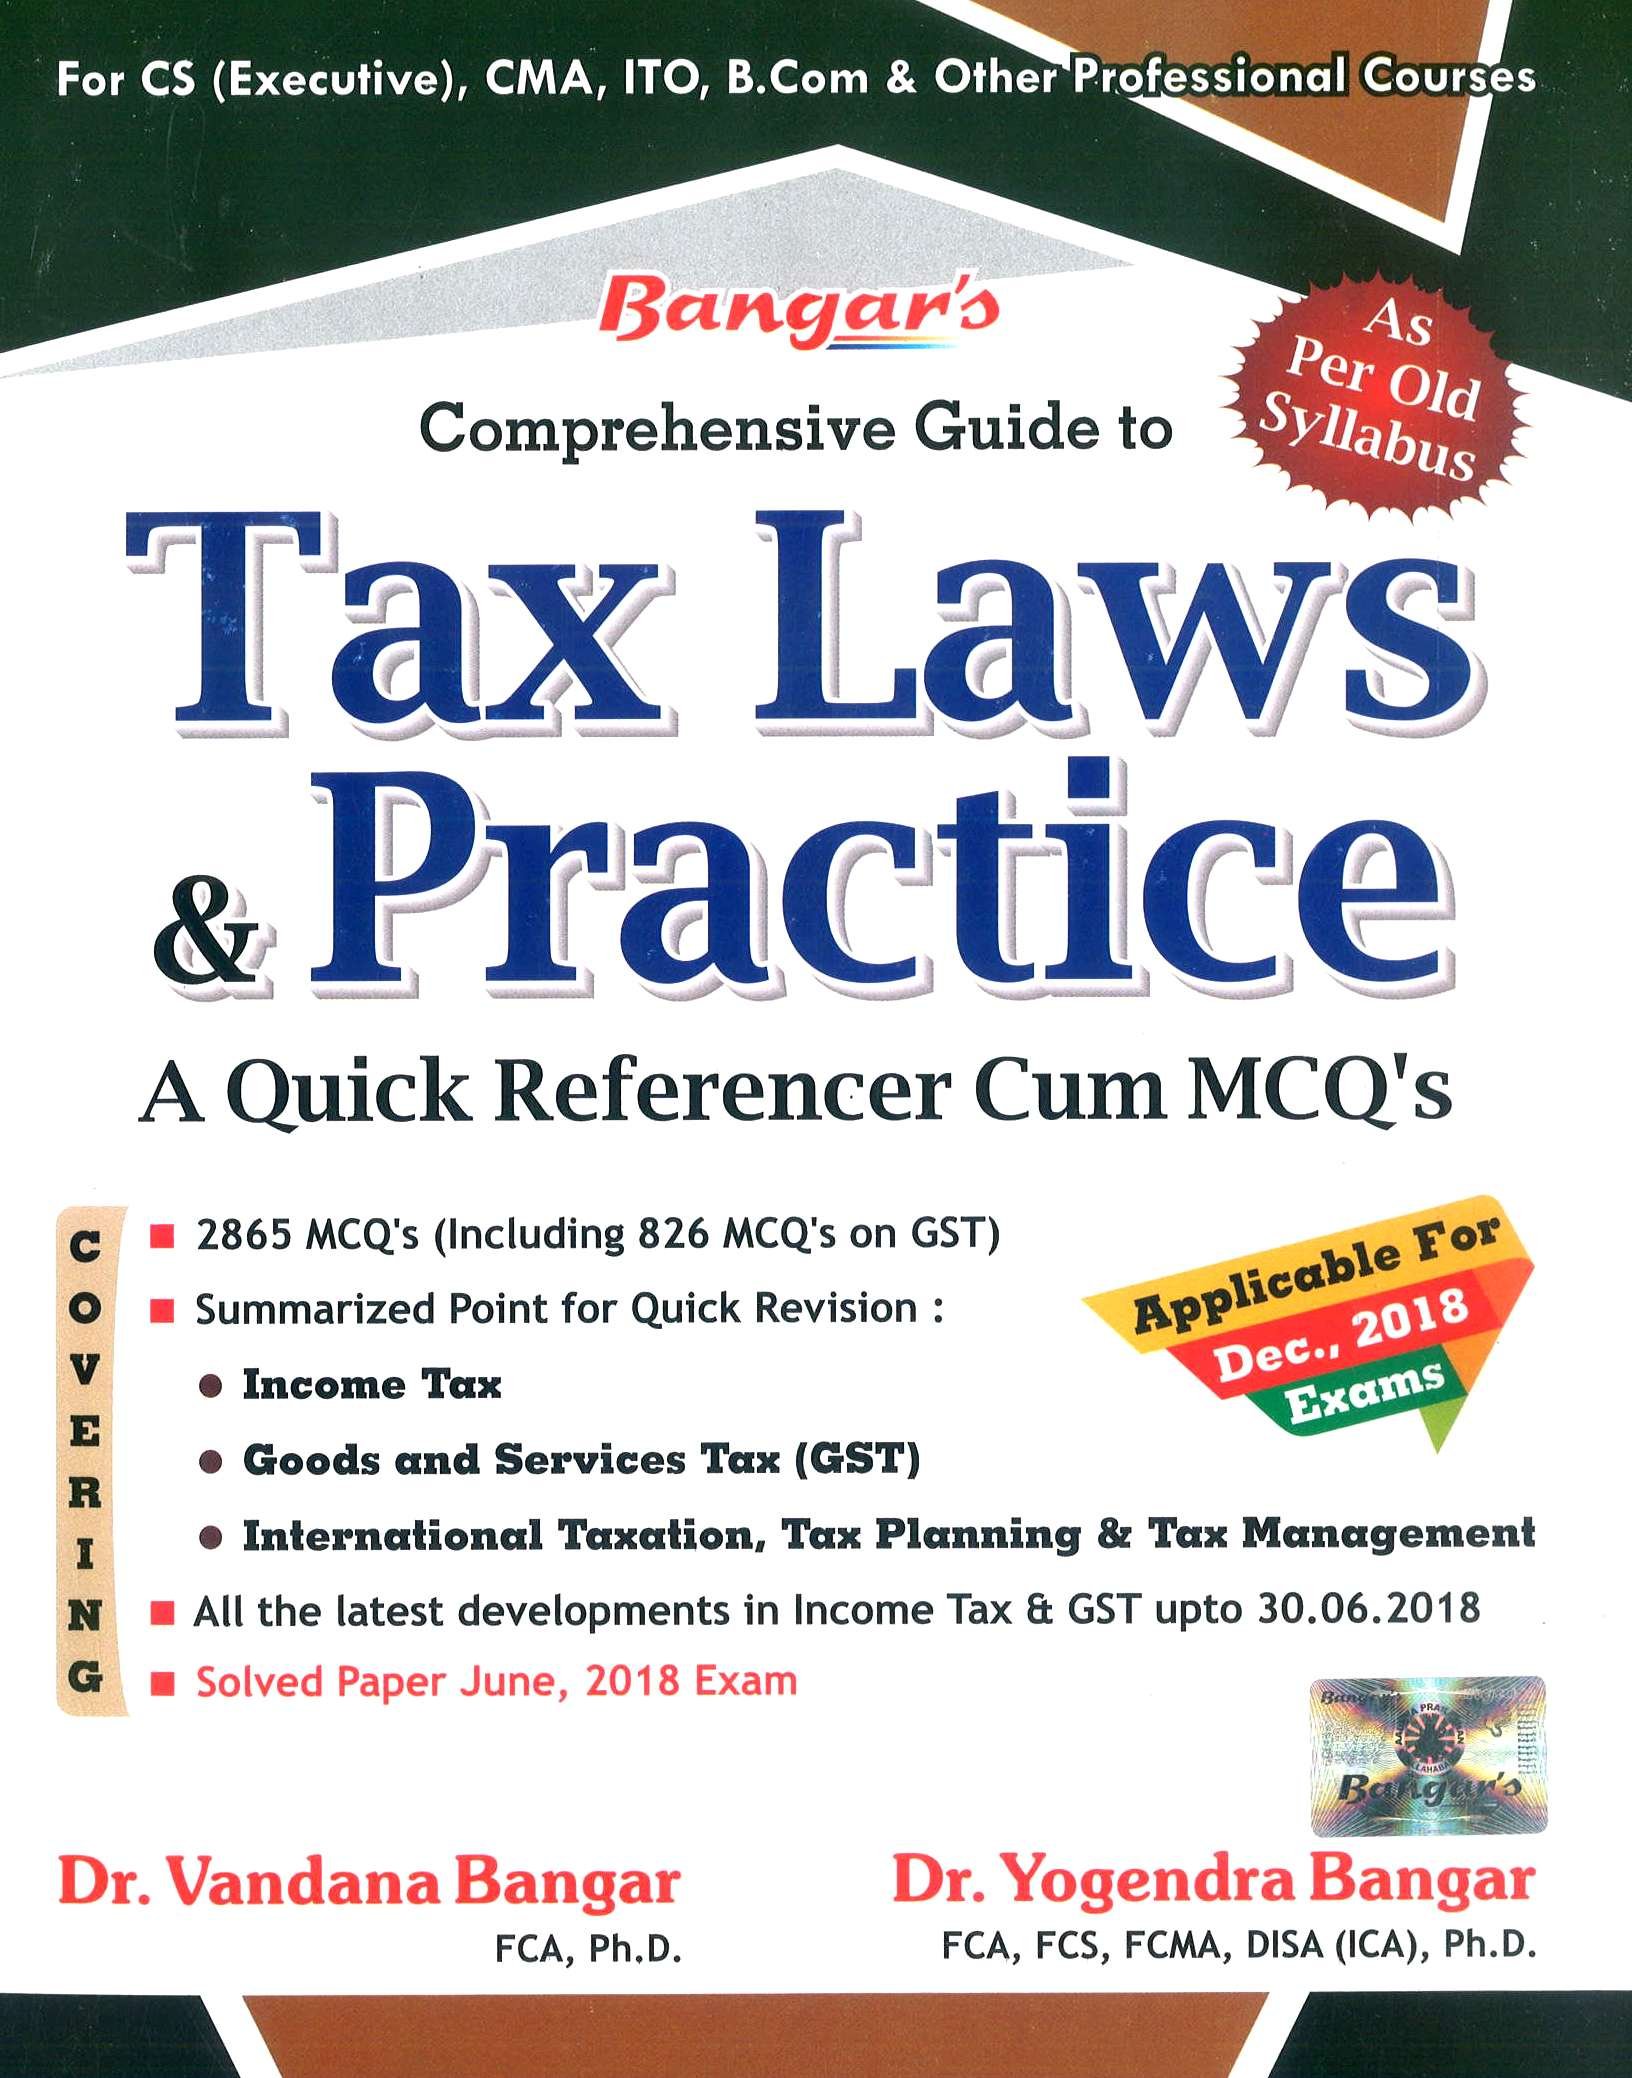 Aadhya Prakashan Bangar's Comprehensive Guide To Tax Laws and Practice (MCQ'S) for CS Executive by Yogendra Bangar and Vandana Bangar, Applicable Dec 2018 Exam